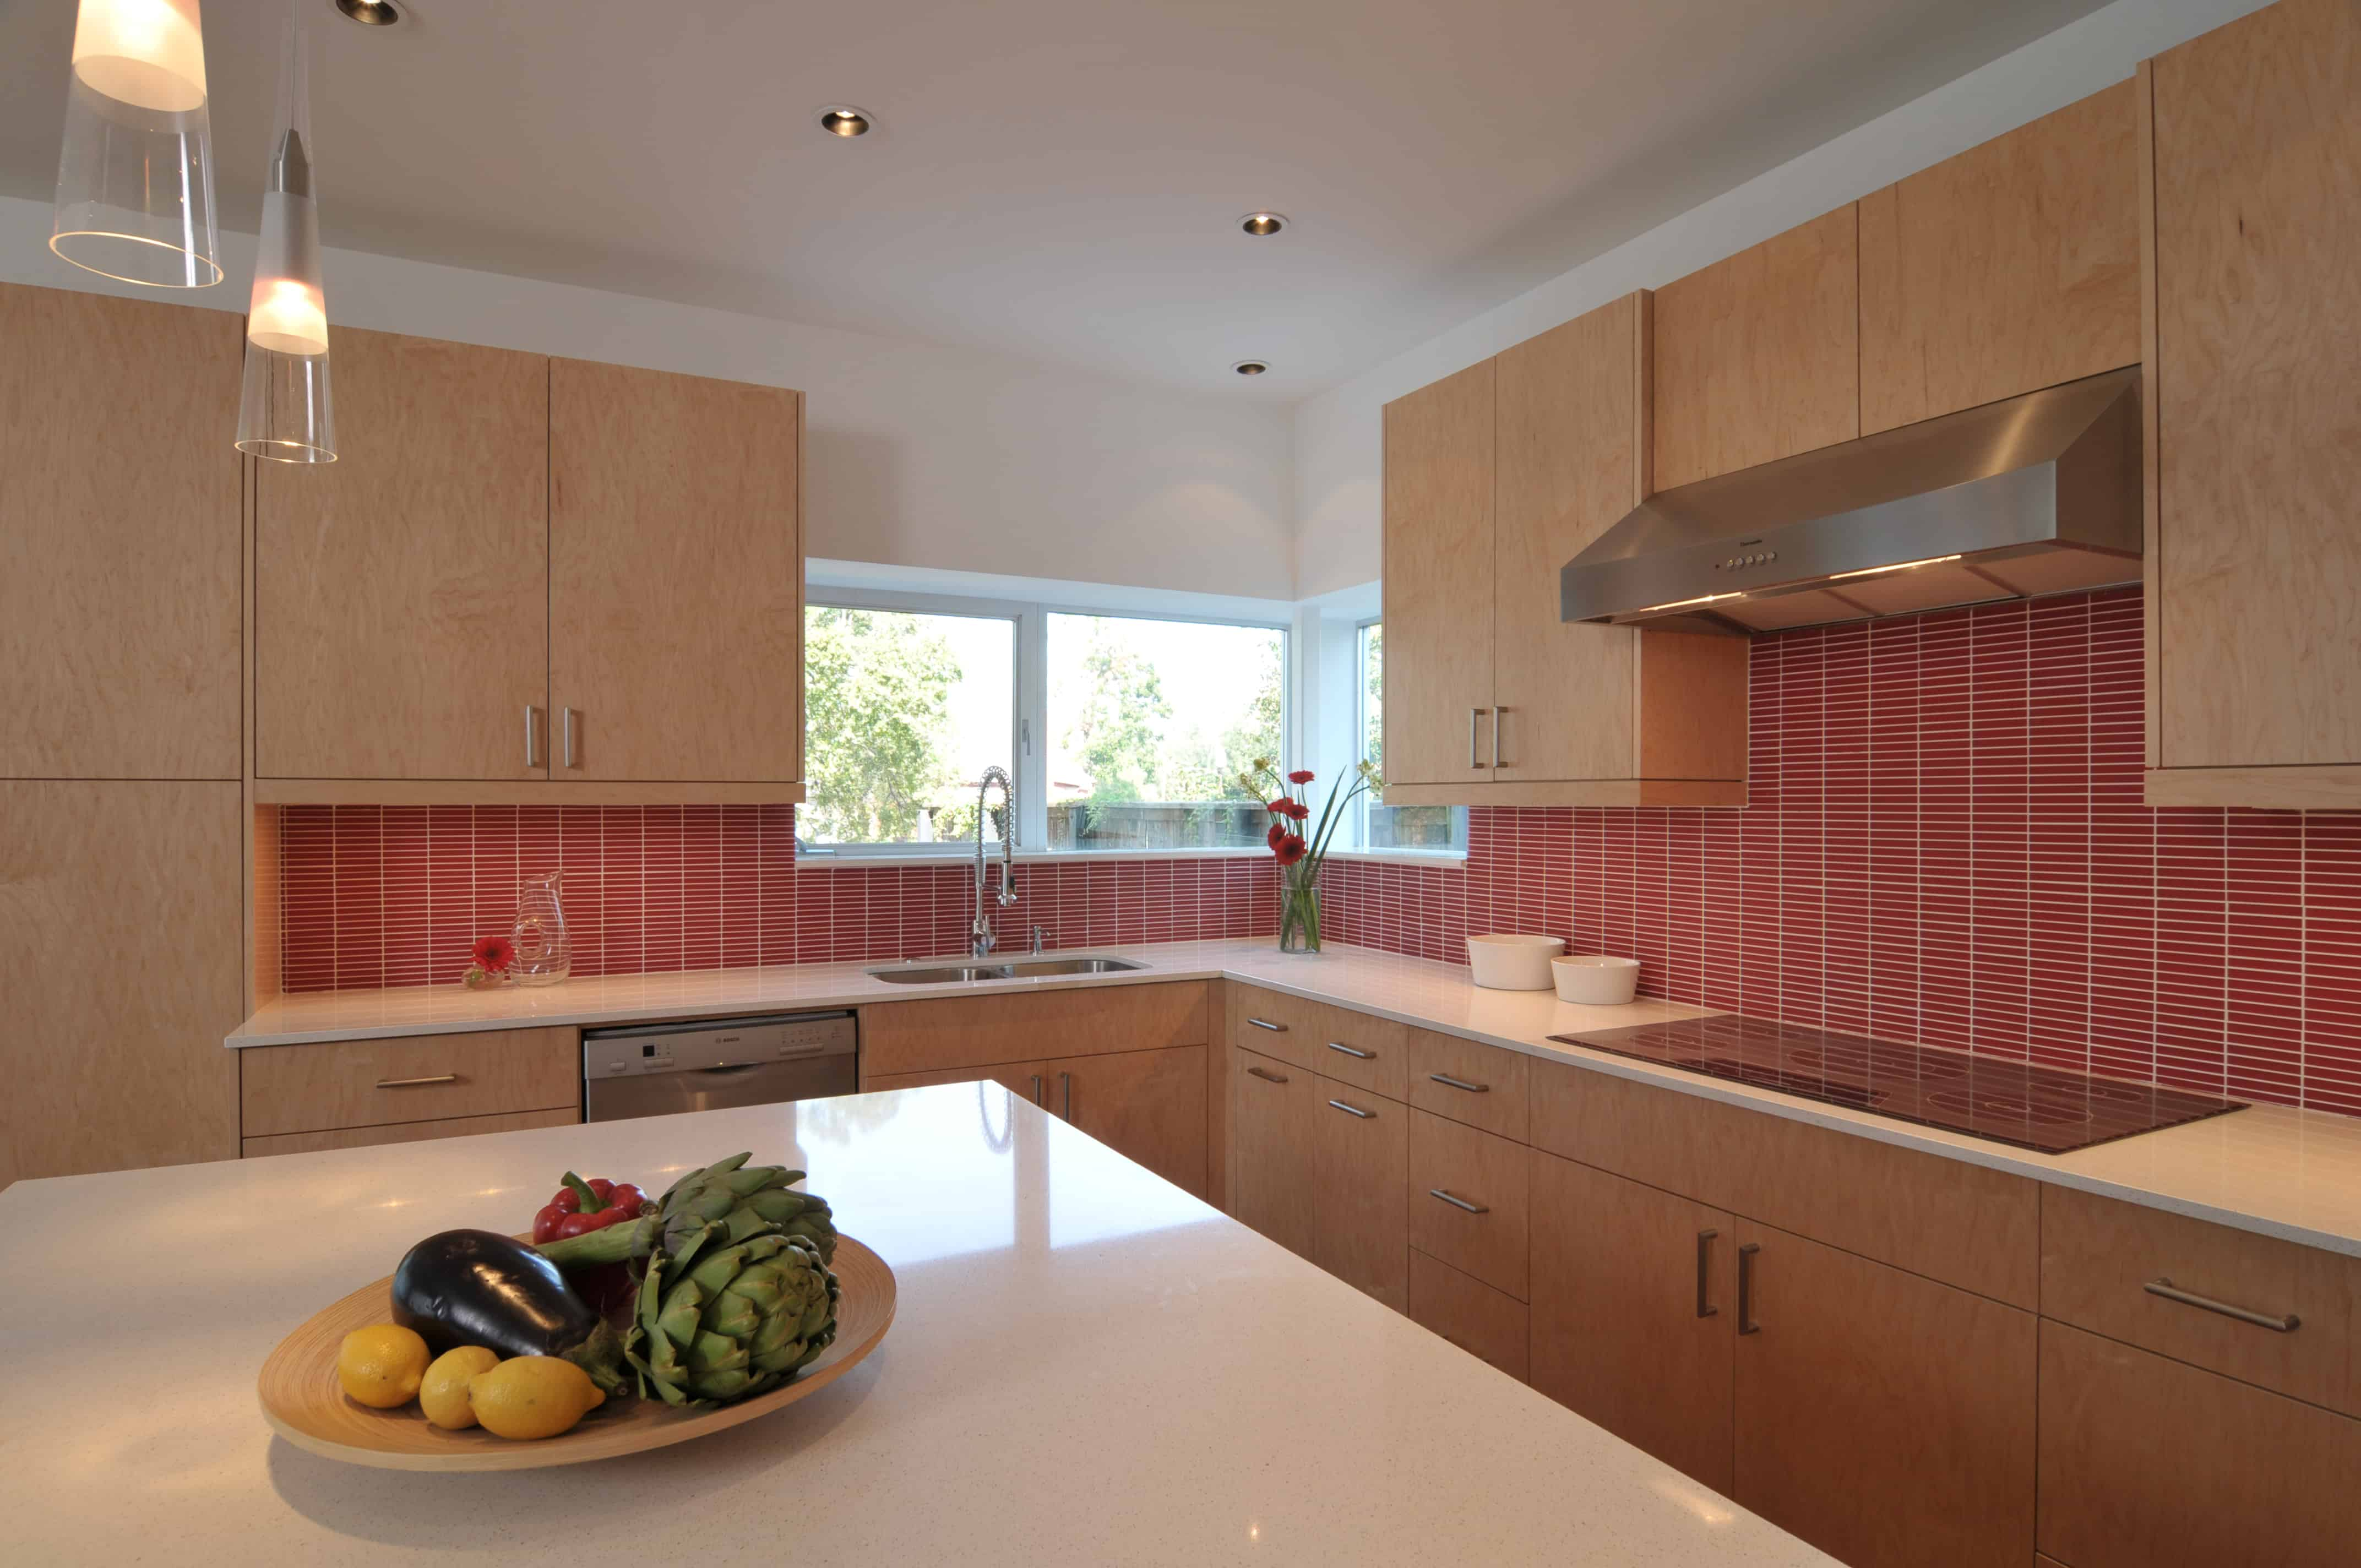 Southmore terrace sustainable houston modern home kitchen accented by vibrant red glass tile.